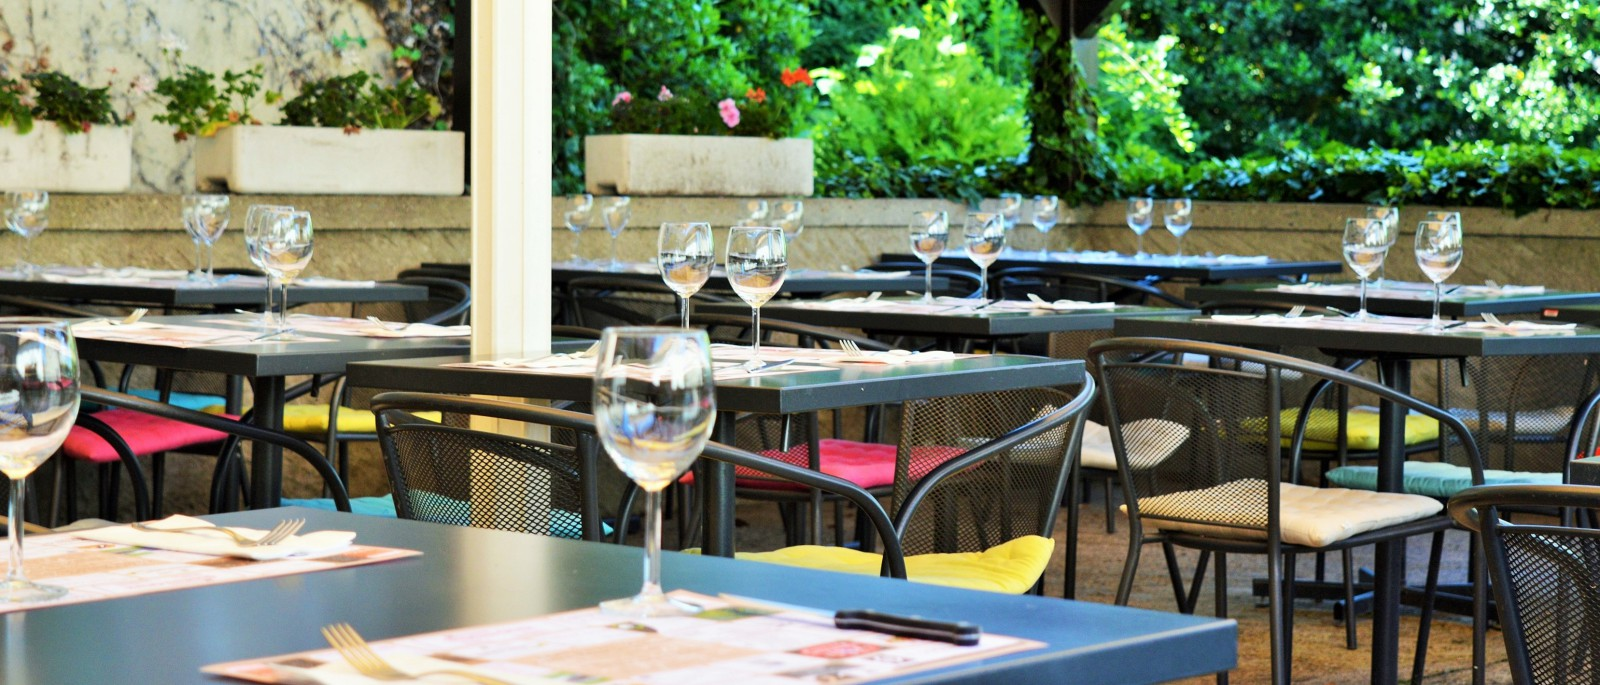 Cafe de village terrasse nyon